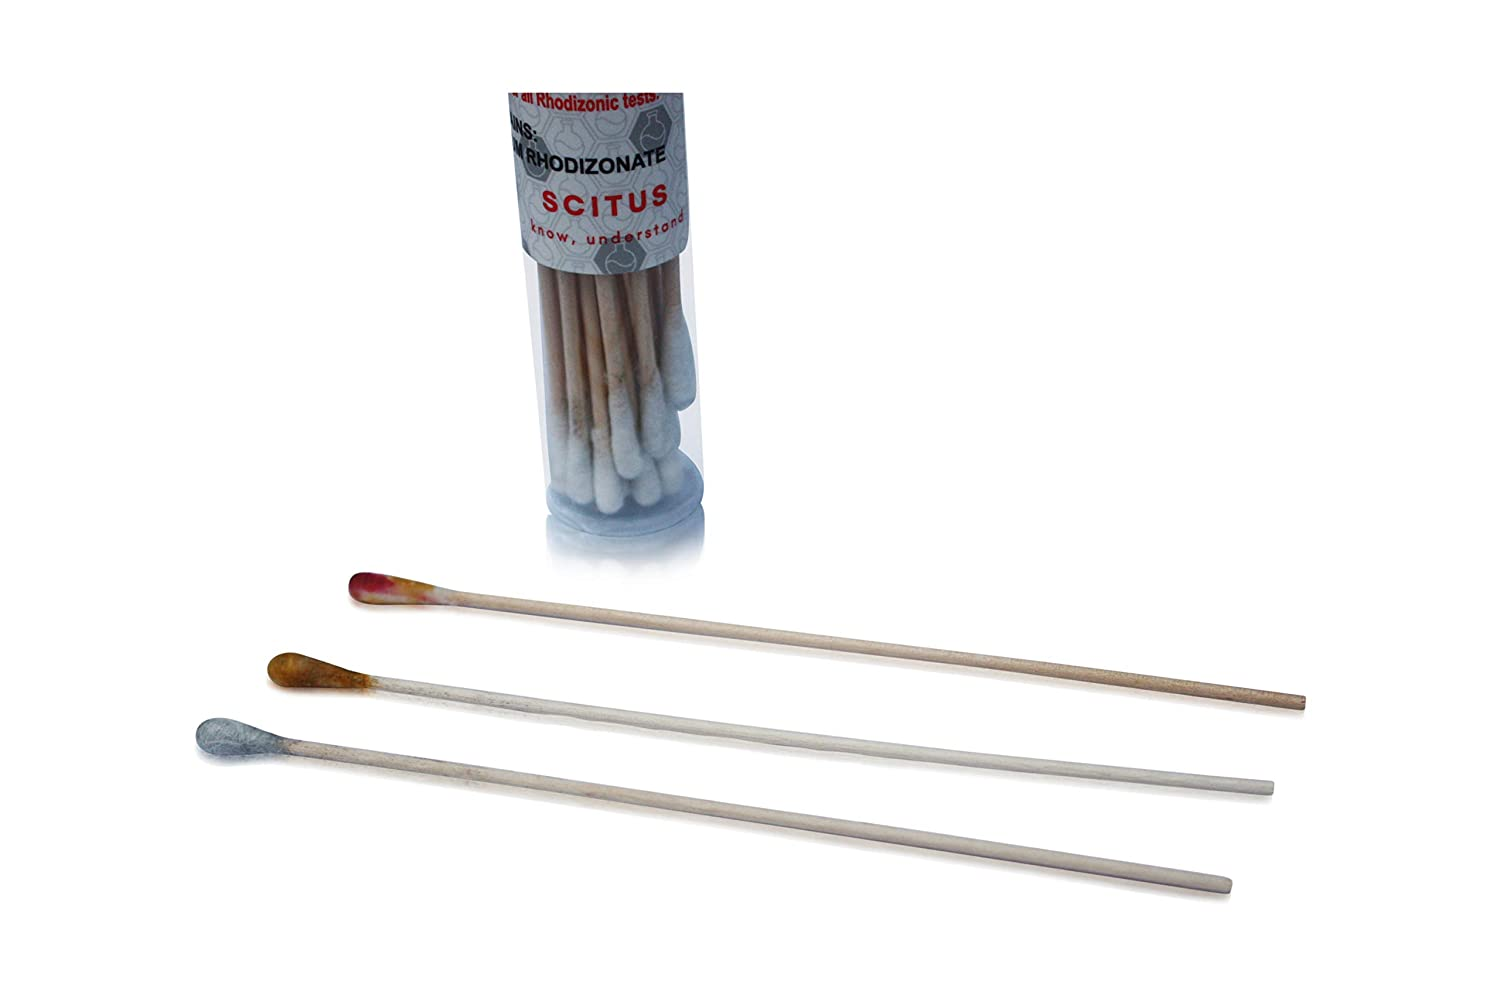 Scitus Lead Test Kit with 30 Testing Swabs | Rapid Test Results in 30 Seconds | Just Dip in White Vinegar to Use | Lead Testing Kits for Home Use | Reagent Lead Check Suitable for All Surfaces